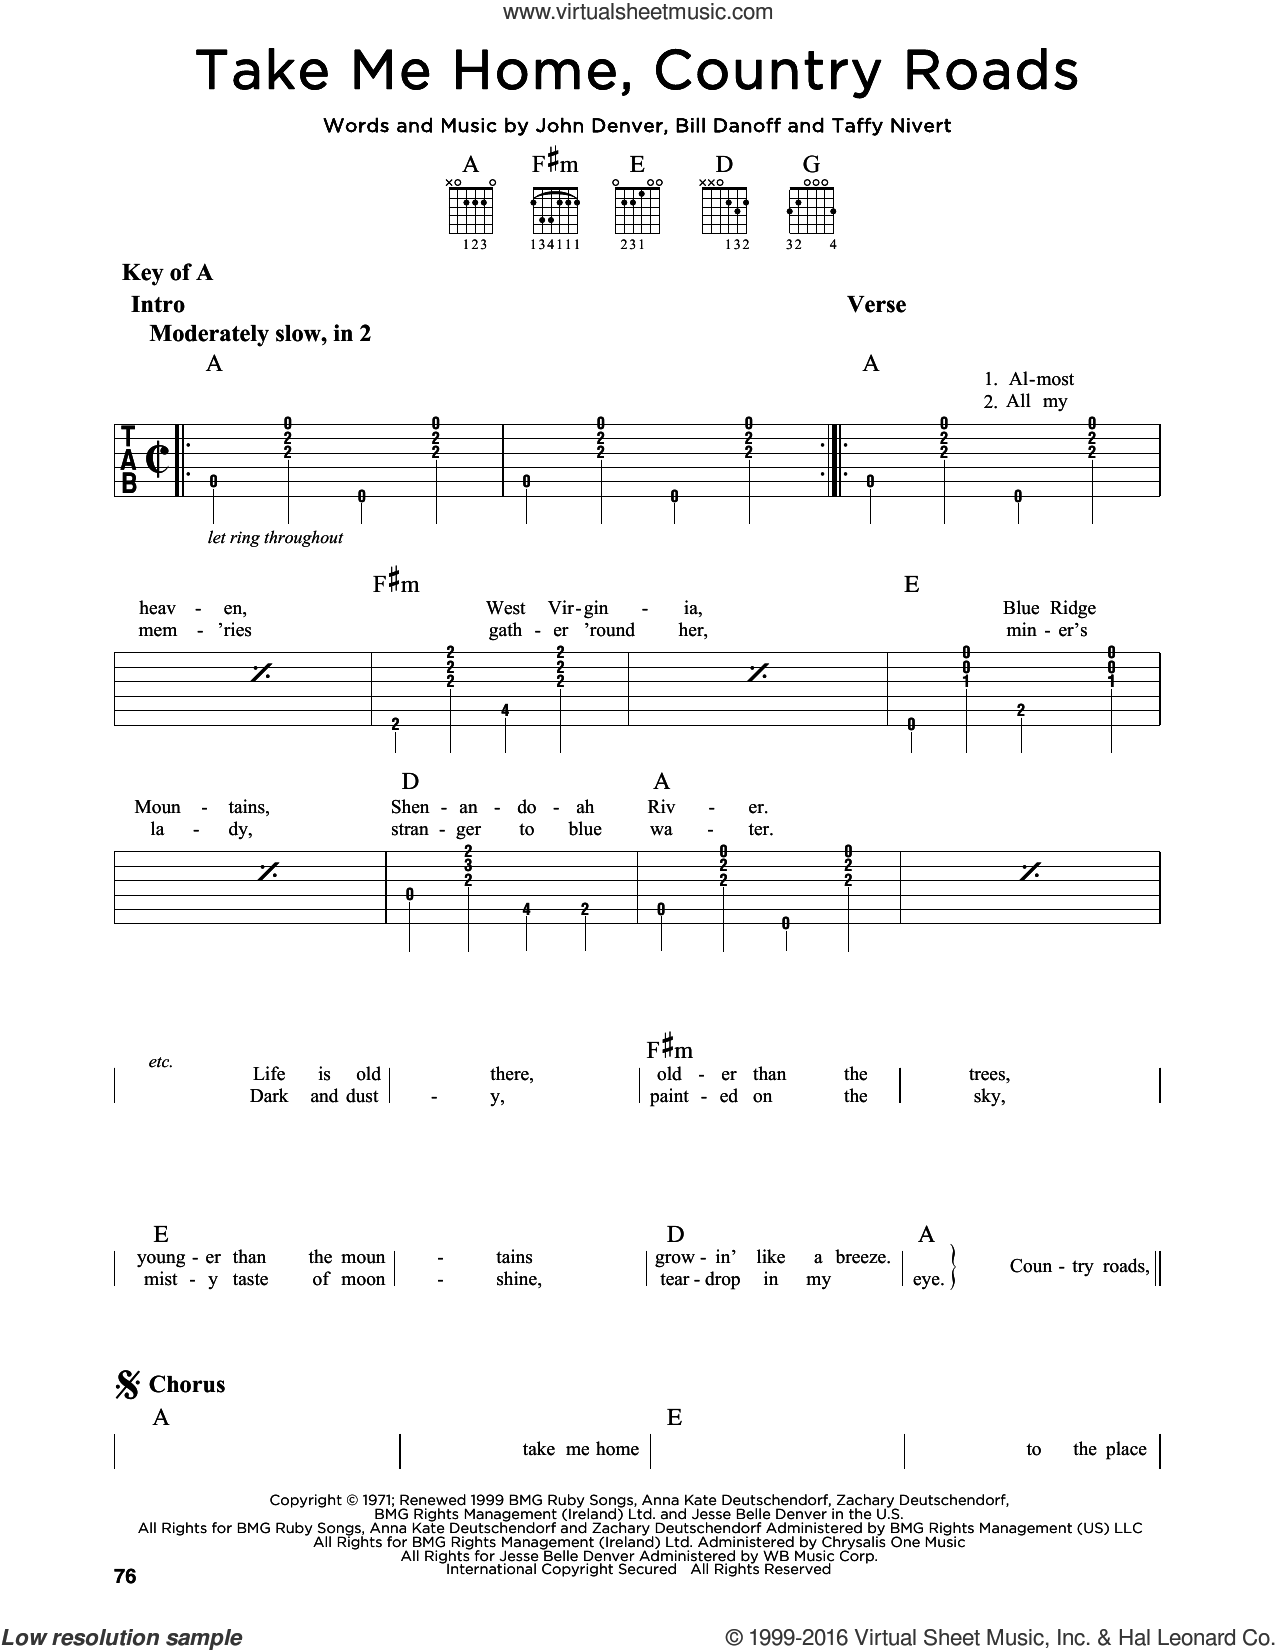 Take Me Home, Country Roads sheet music for guitar solo (lead sheet) by Taffy Nivert, Bill Danoff and John Denver. Score Image Preview.